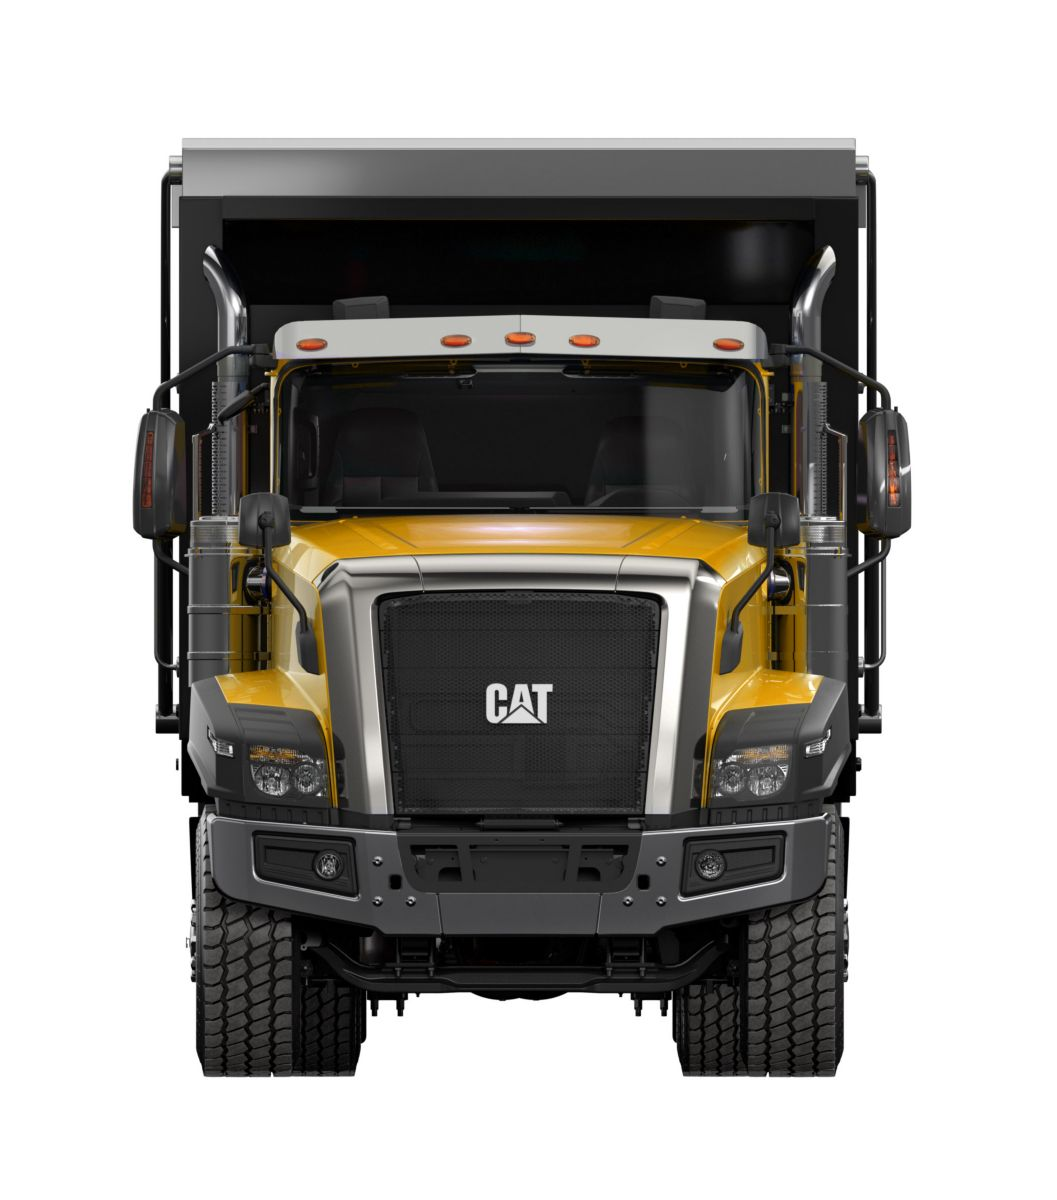 New Cat On-highway Trucks For Sale